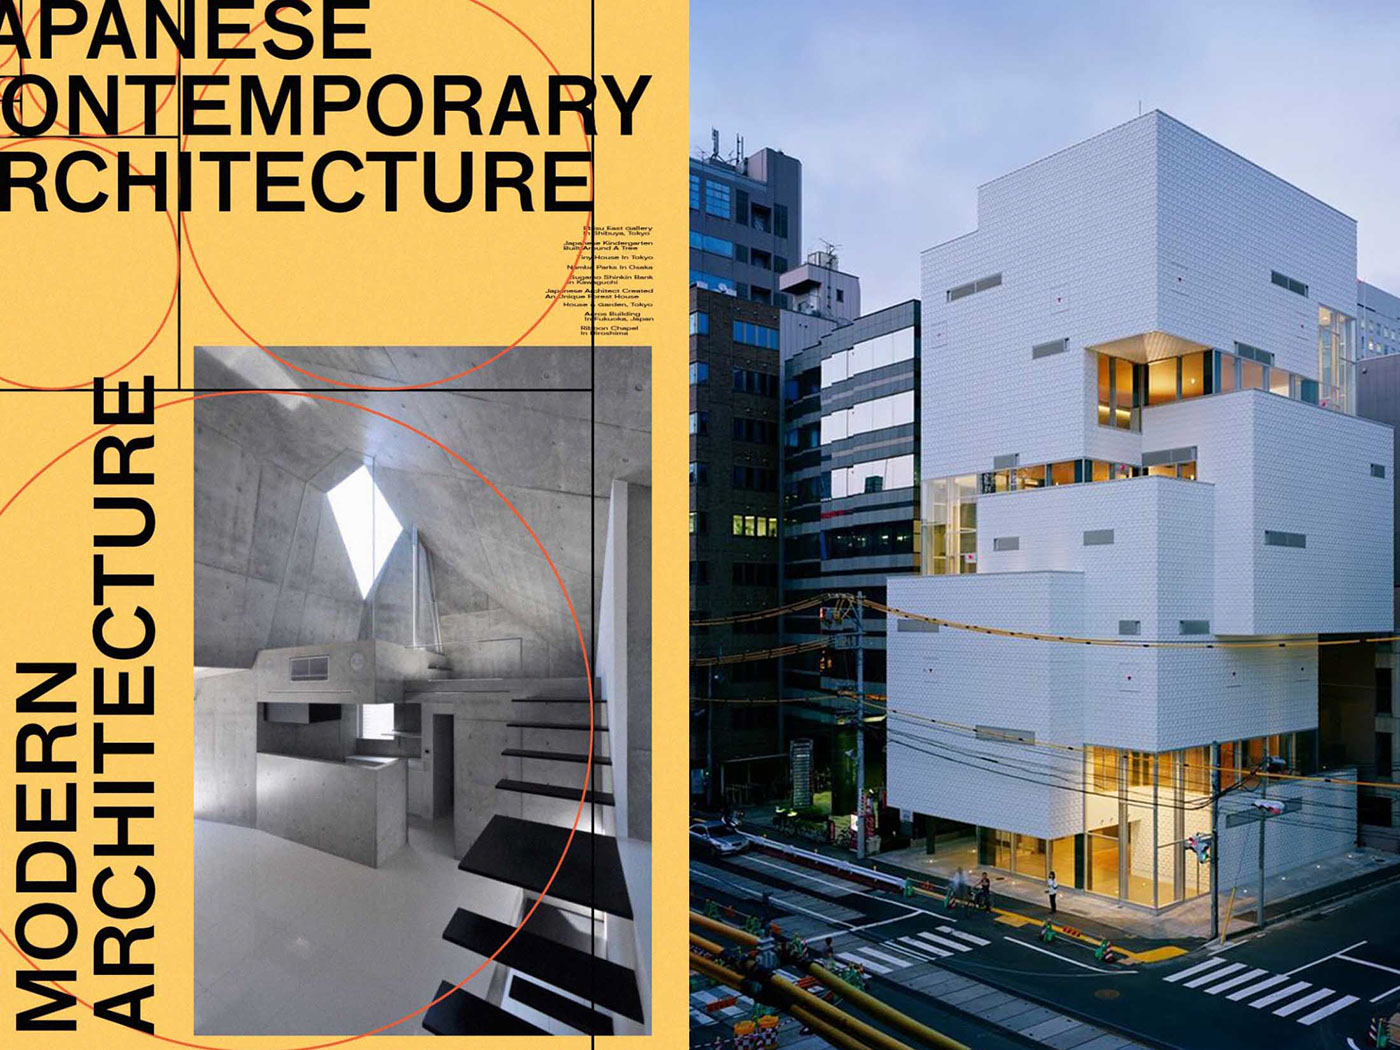 JAPANESE CONTEMPORARY ARCHITECTURE POSTER On Behance